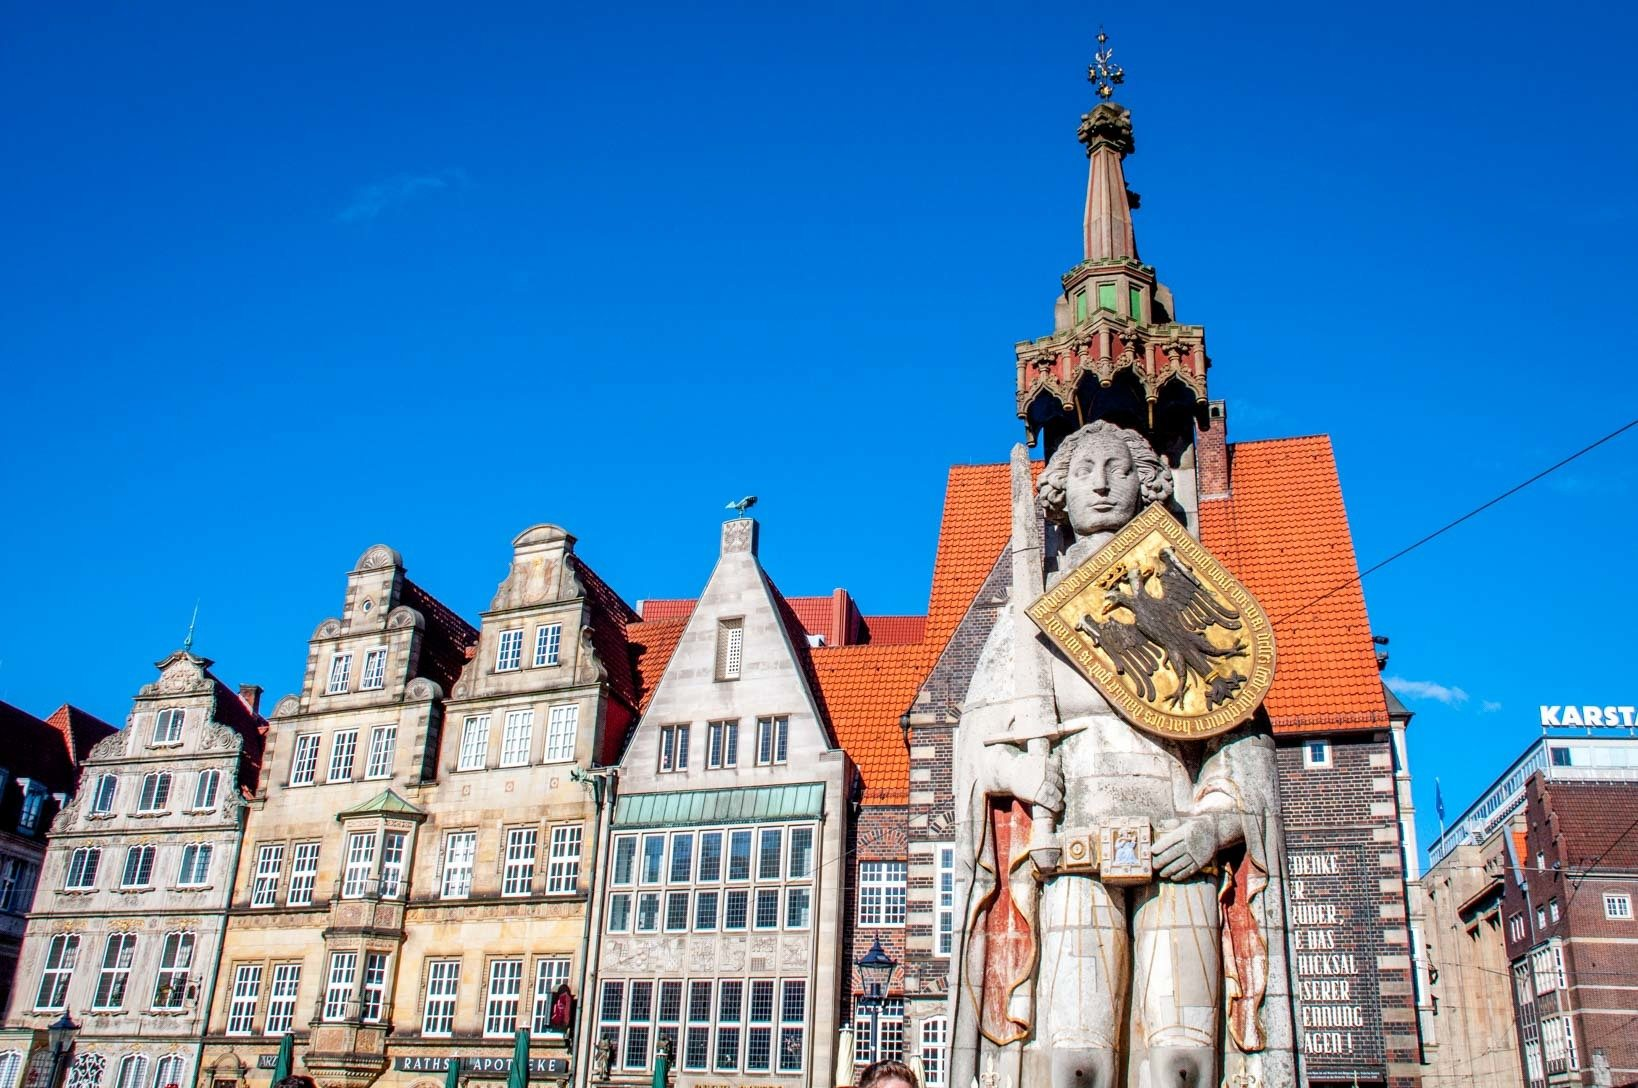 Bremen Roland statue and merchant houses in Germany